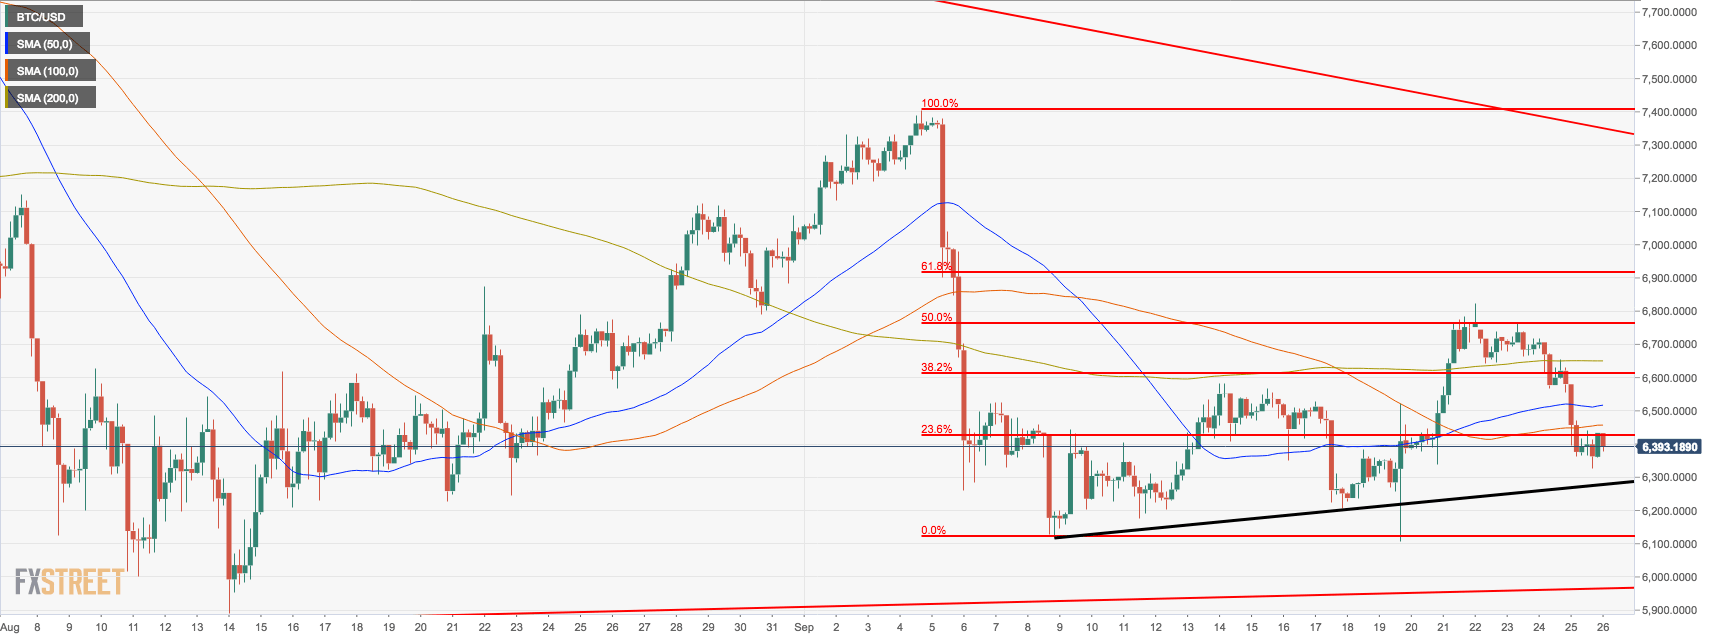 Bitcoin price analysis - BTC/USD rangebound under $6,400, but further losses are limited